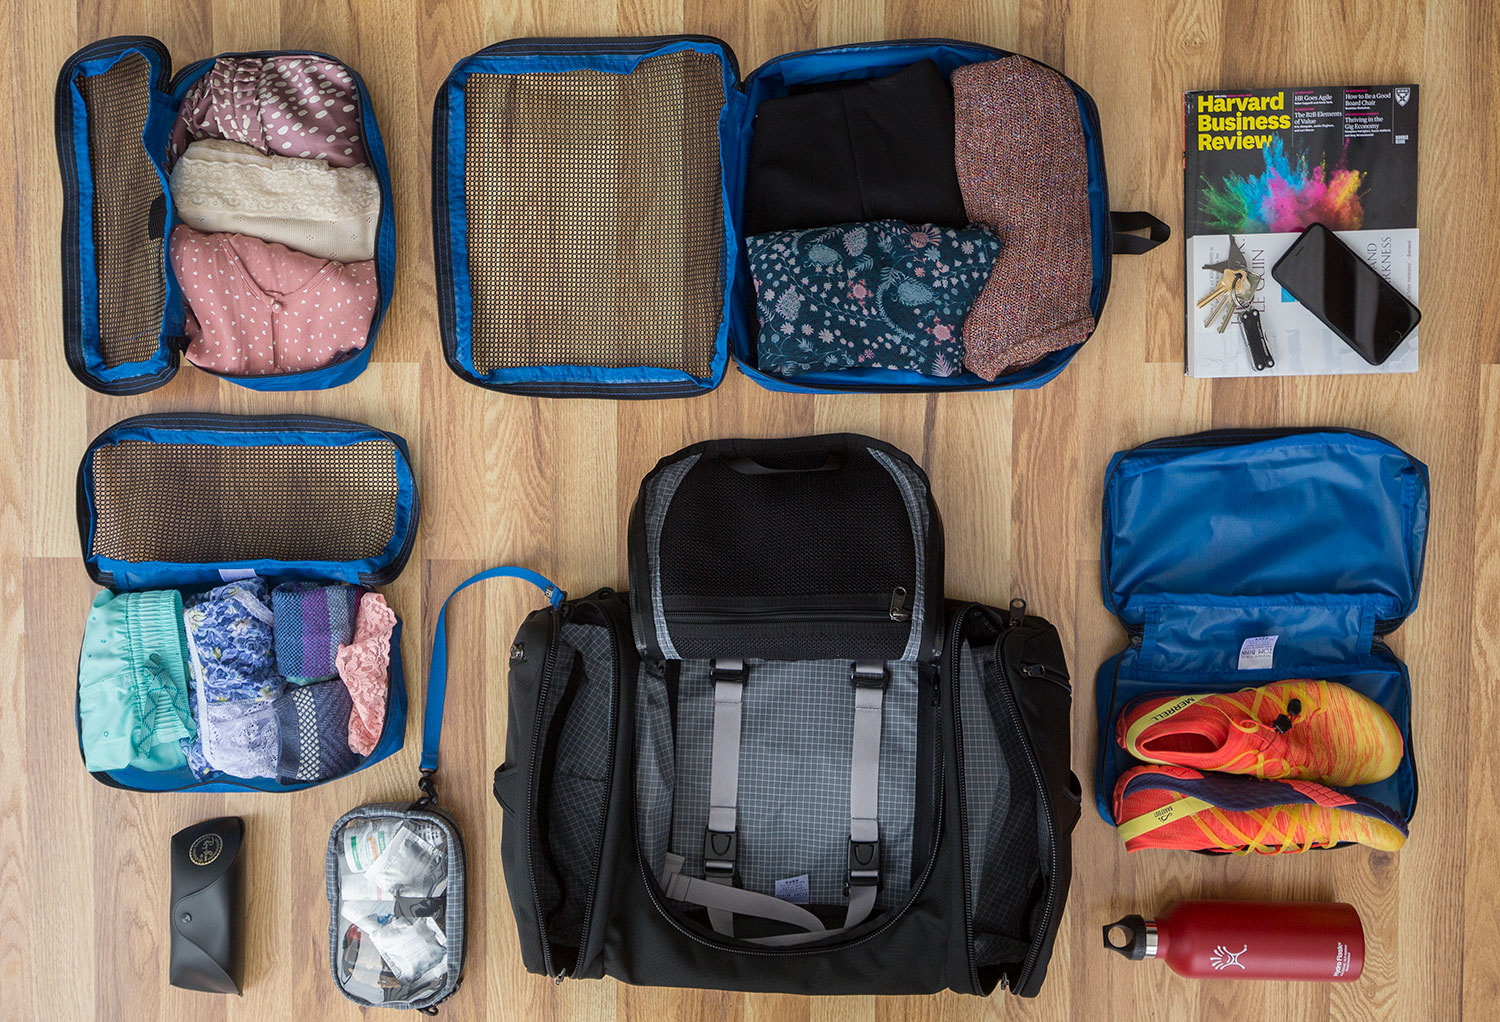 How To Pack Your Backpack For That Superior In a single day Wilderness Backcountry Journey